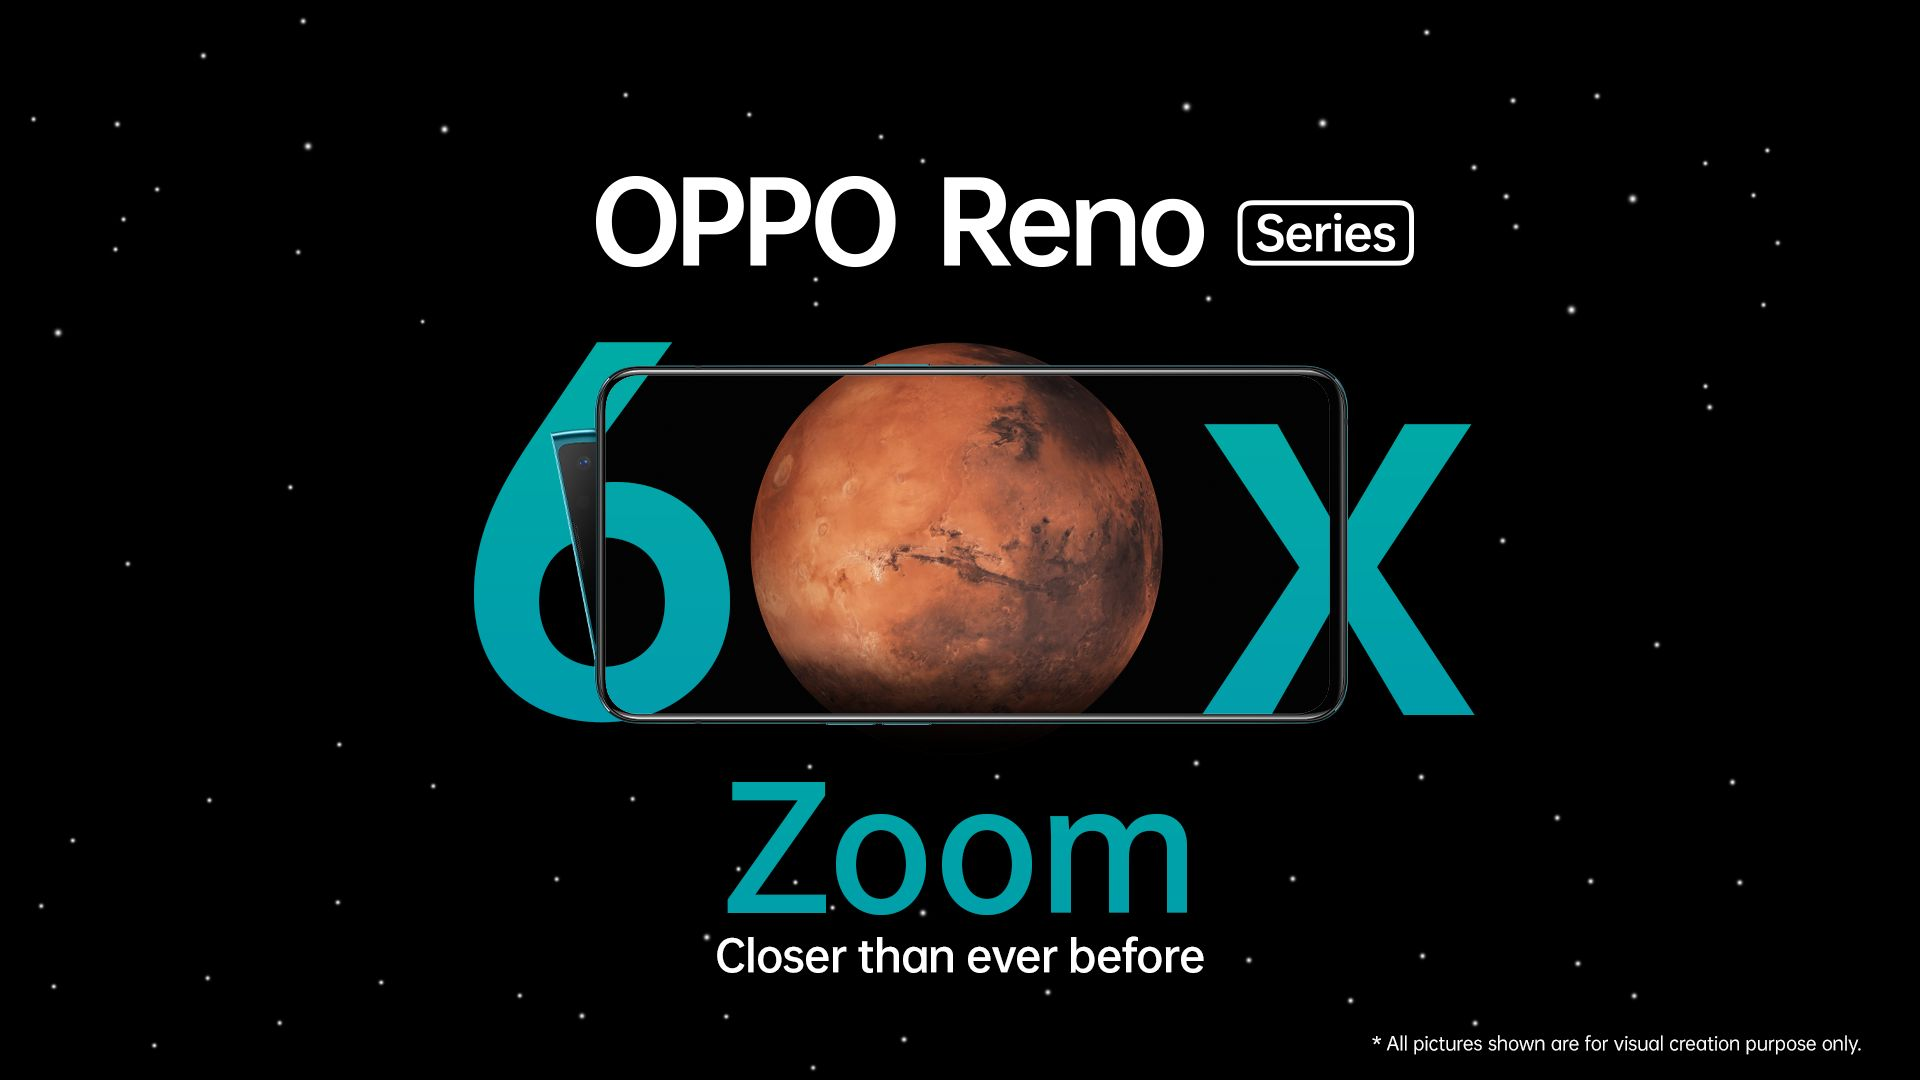 First ever 60x Digital Zoom technology realized on OPPO Reno Series